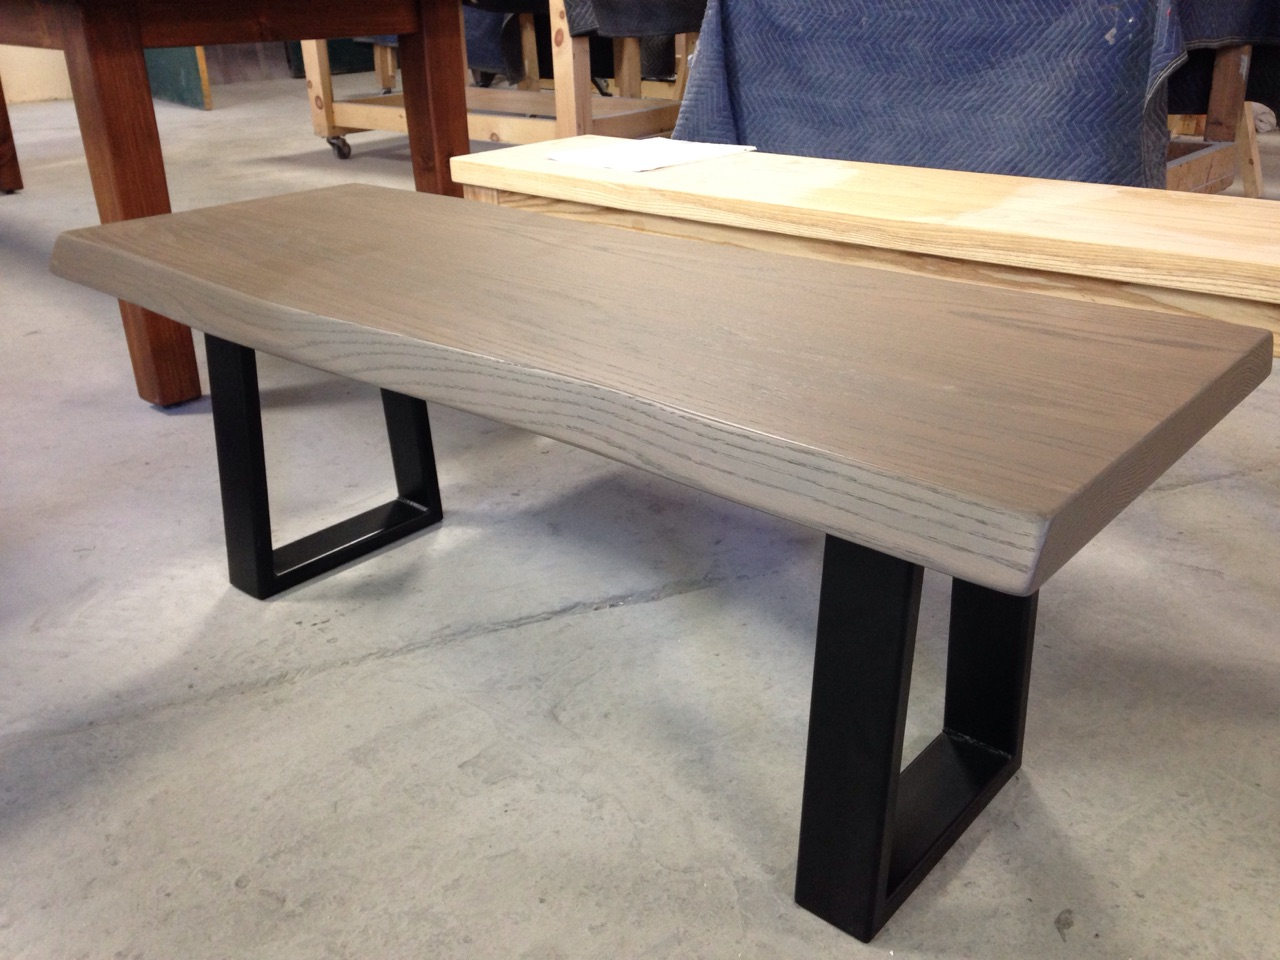 Ash Bench with a Subtle Live Edge and 3x1 Steel Legs in a Tapered Shape. Finished with a Light Wisteria Stain.